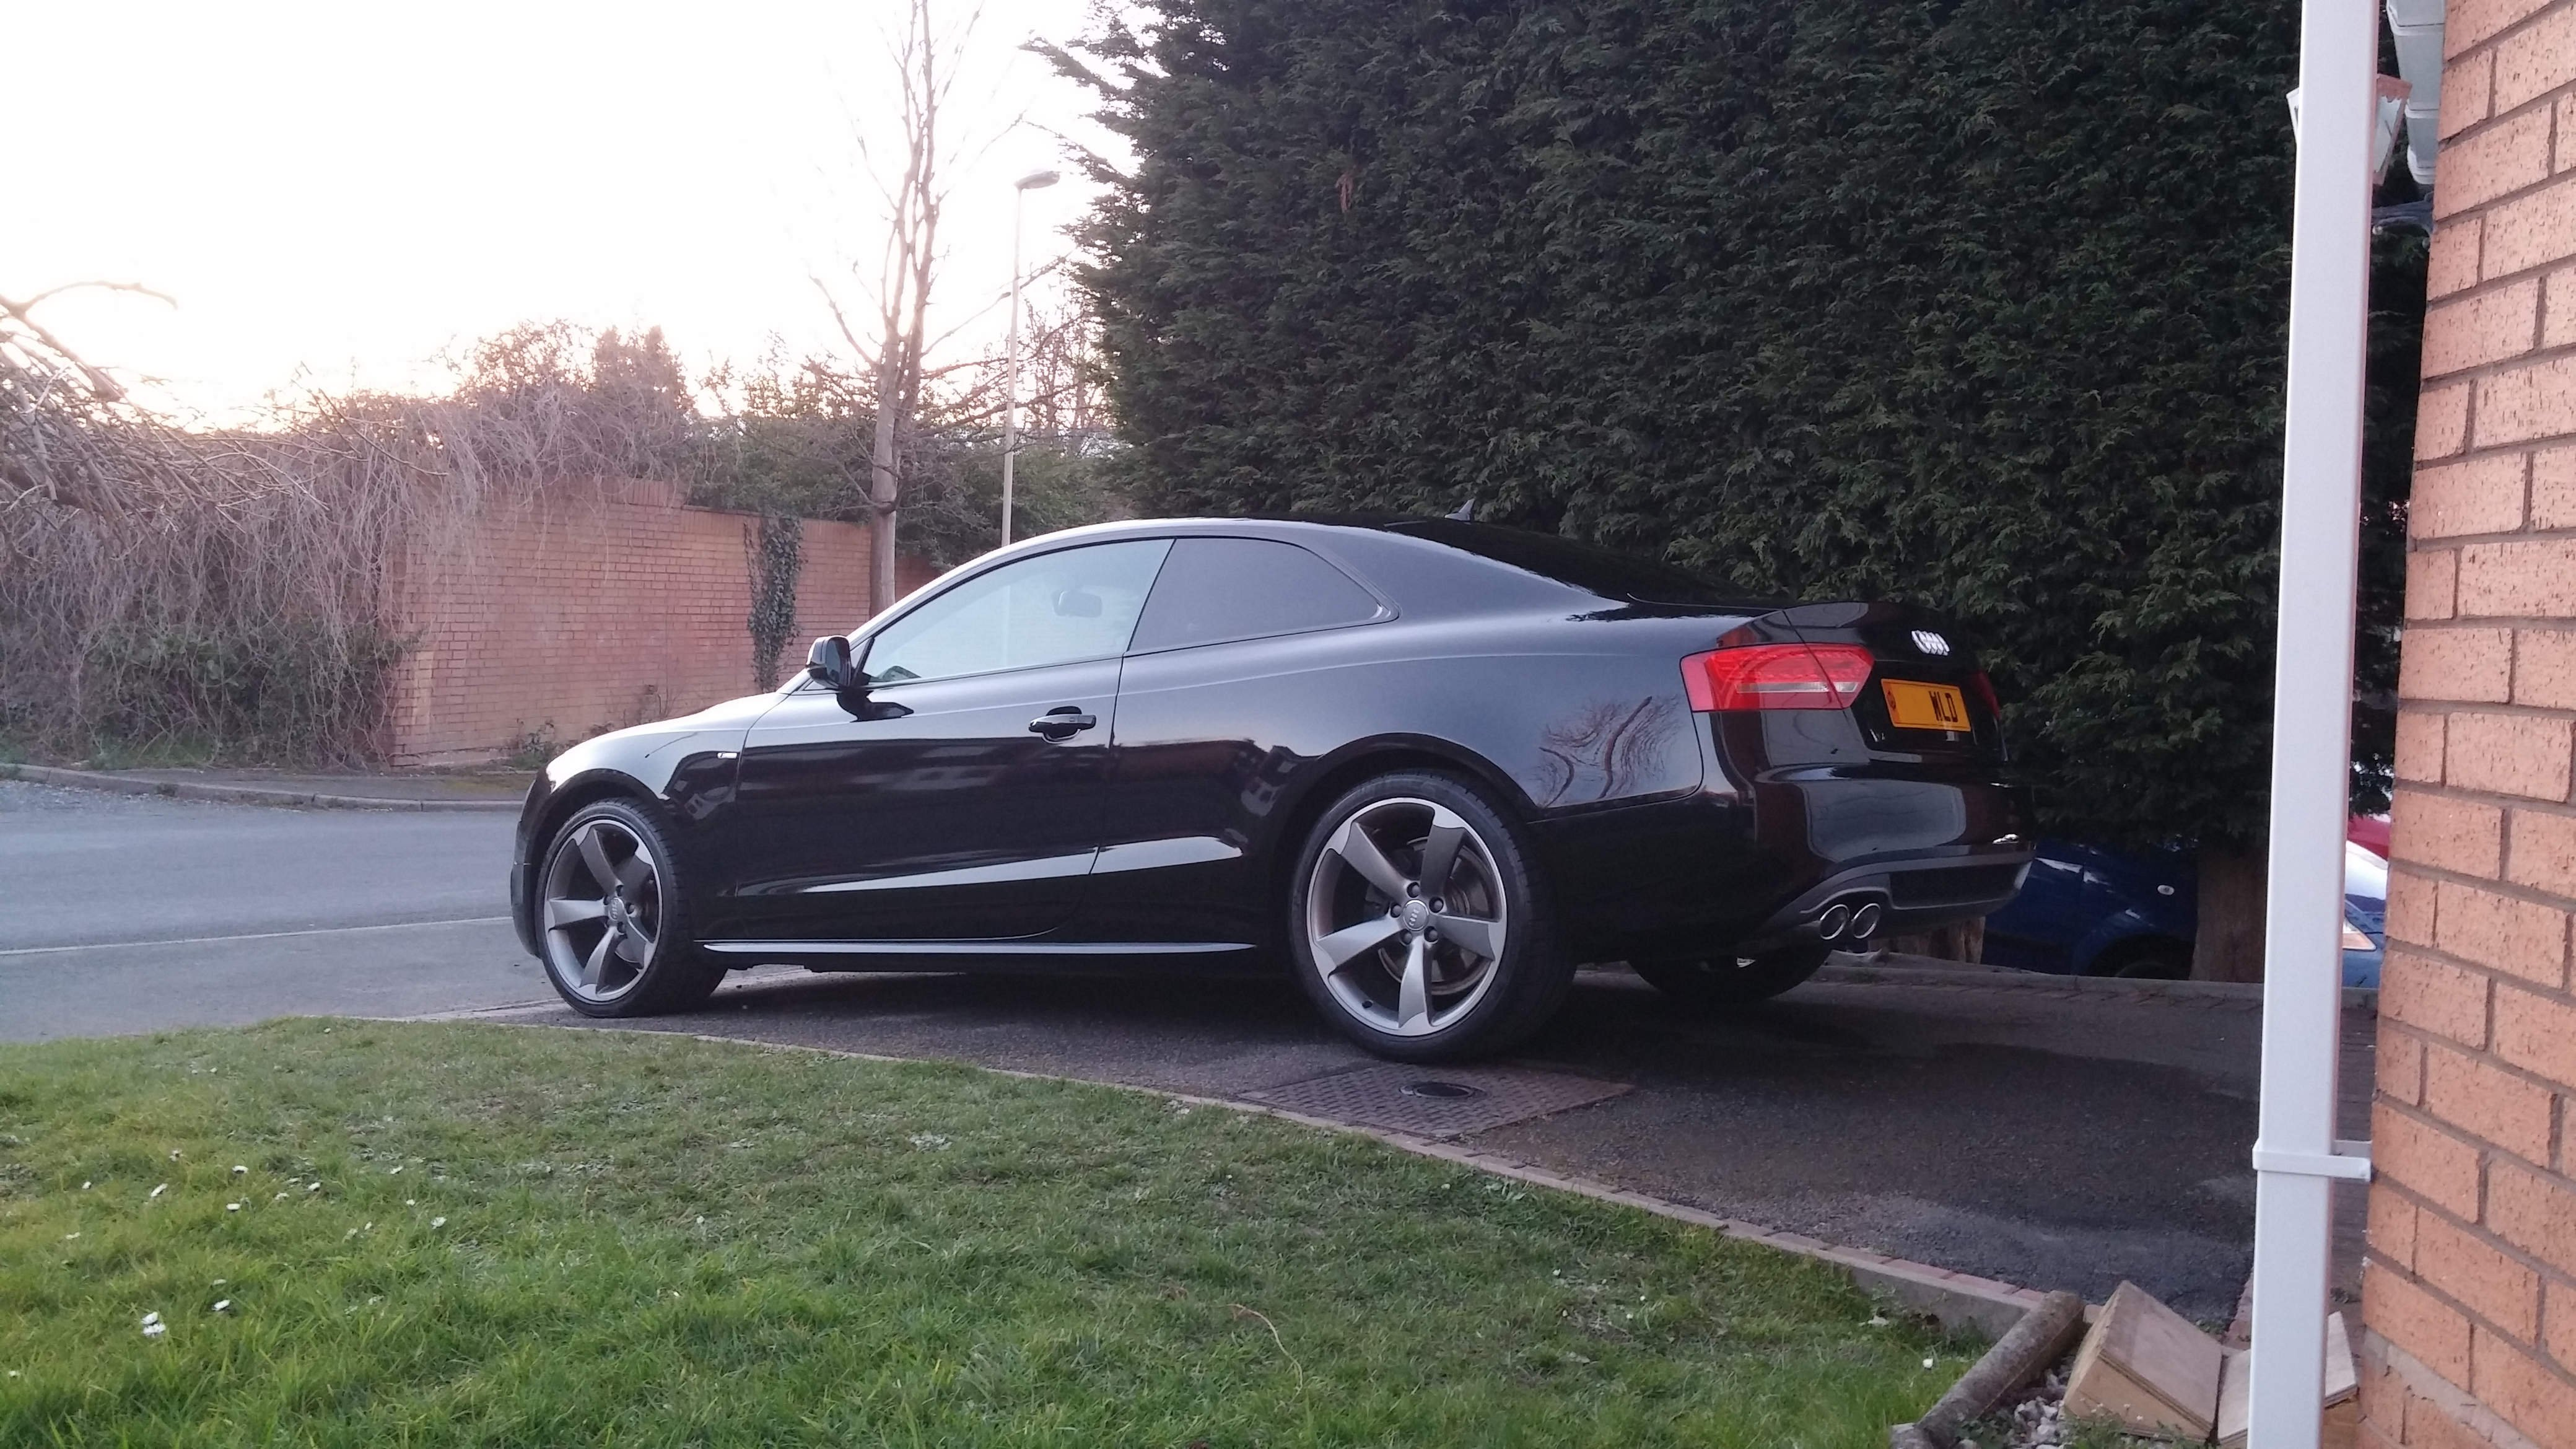 mod thread which october mods showthread upcoming my see miltek picture cpo s forum and non picked res westchester can her in em will up be the let audi do modded i signature back you